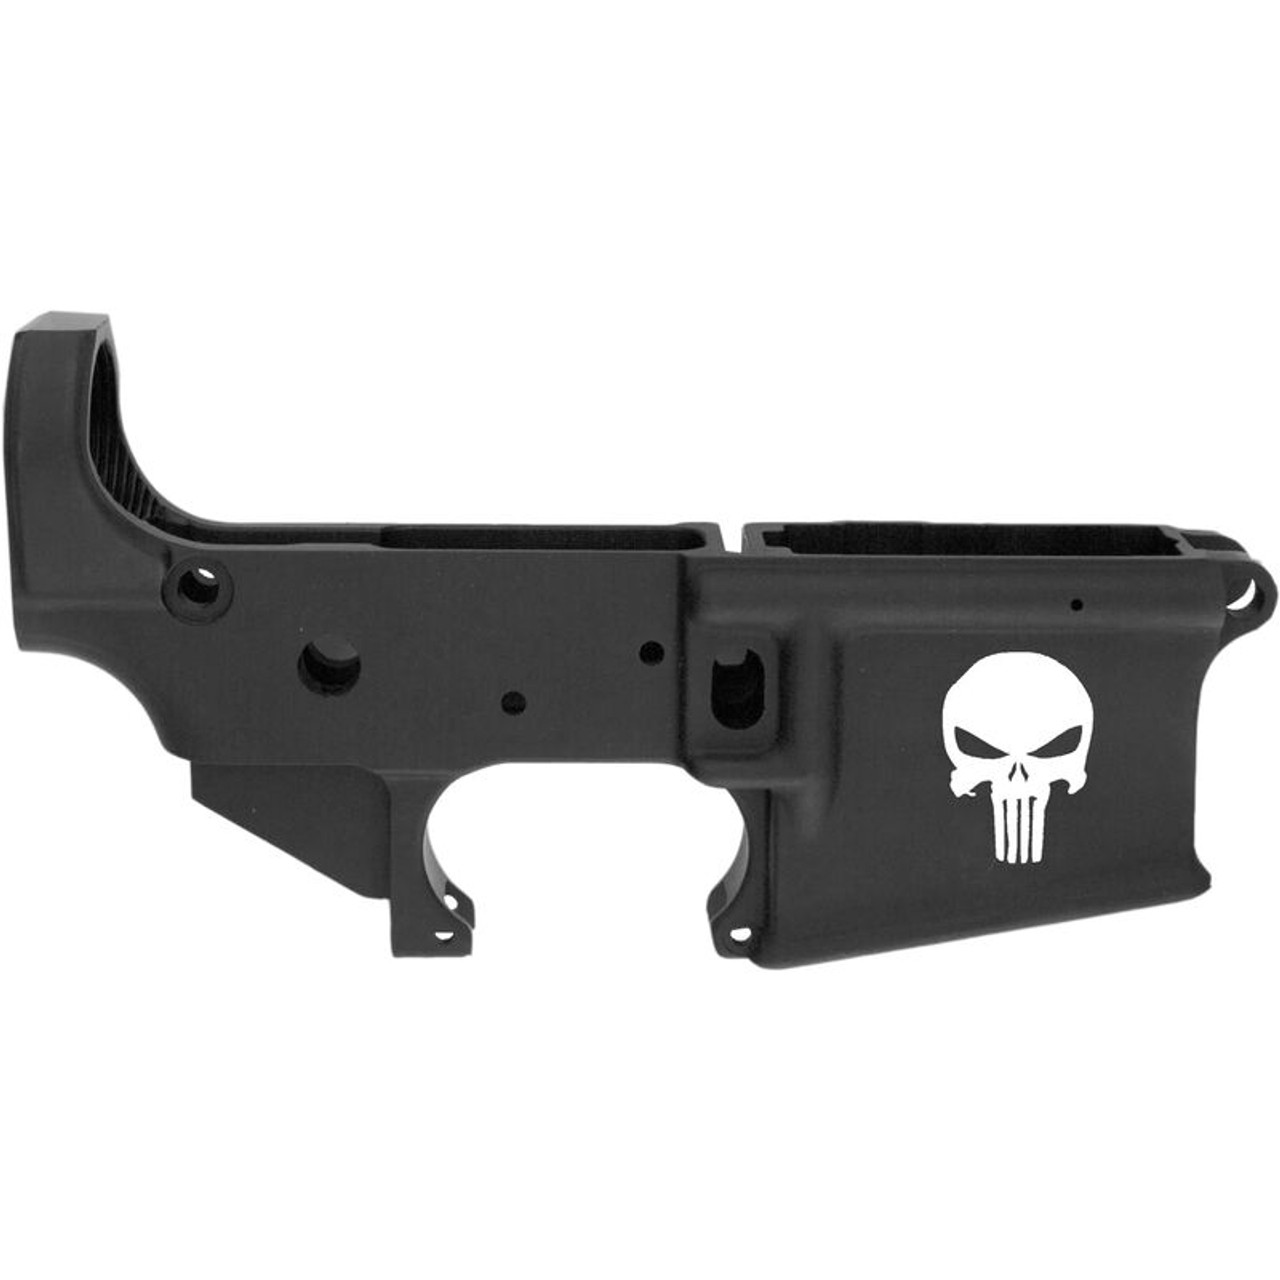 Anderson AM15 Punisher Lower Receiver CALIFORNIA LEGAL - .223/5.56